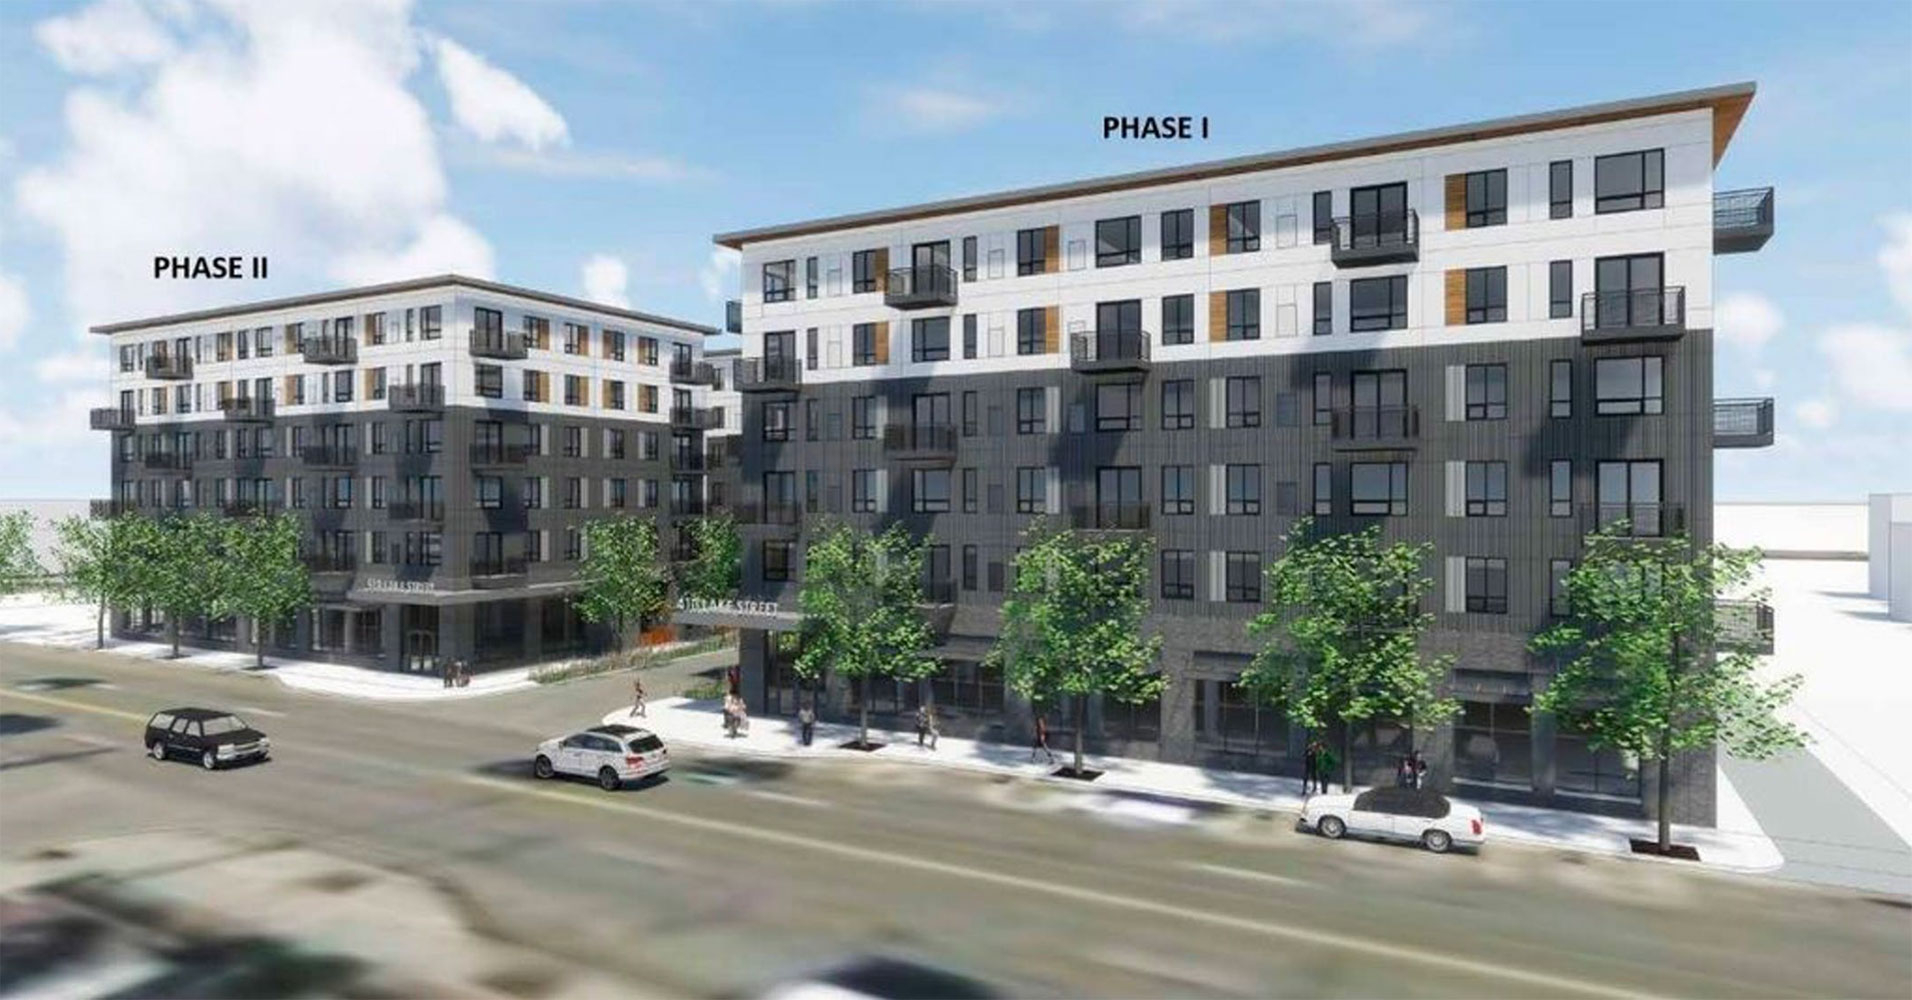 Affordable apartments proposed for Lyn-Lake area of Minneapolis